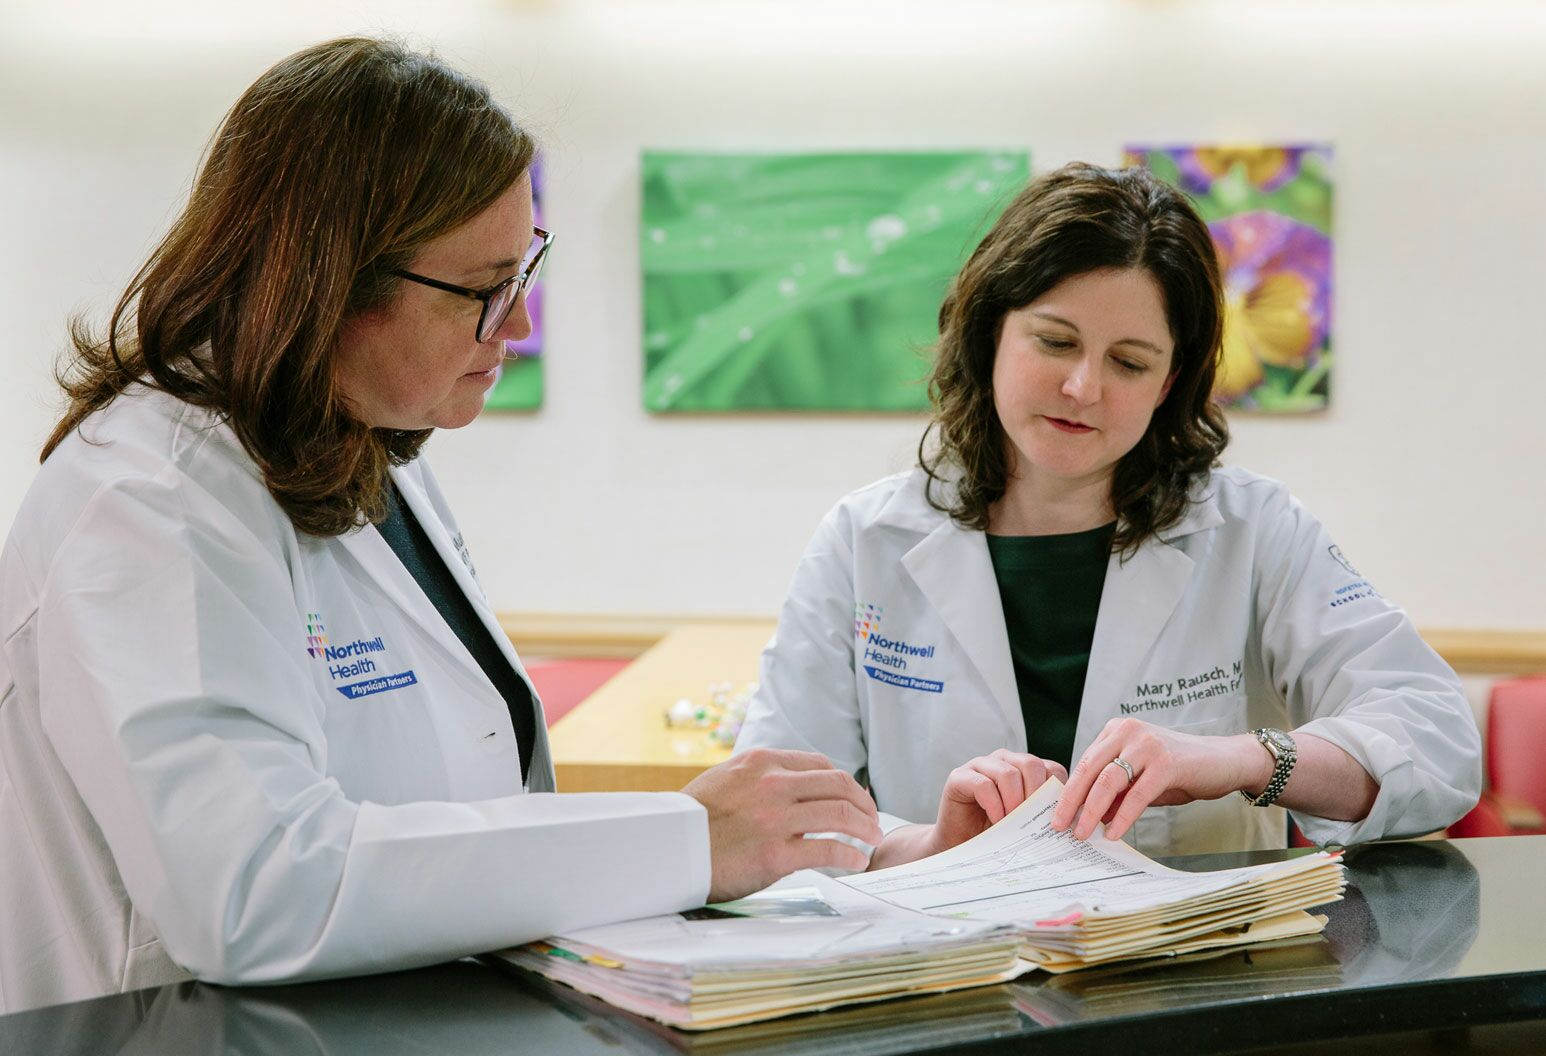 Two women wearing white lab coats look at papers